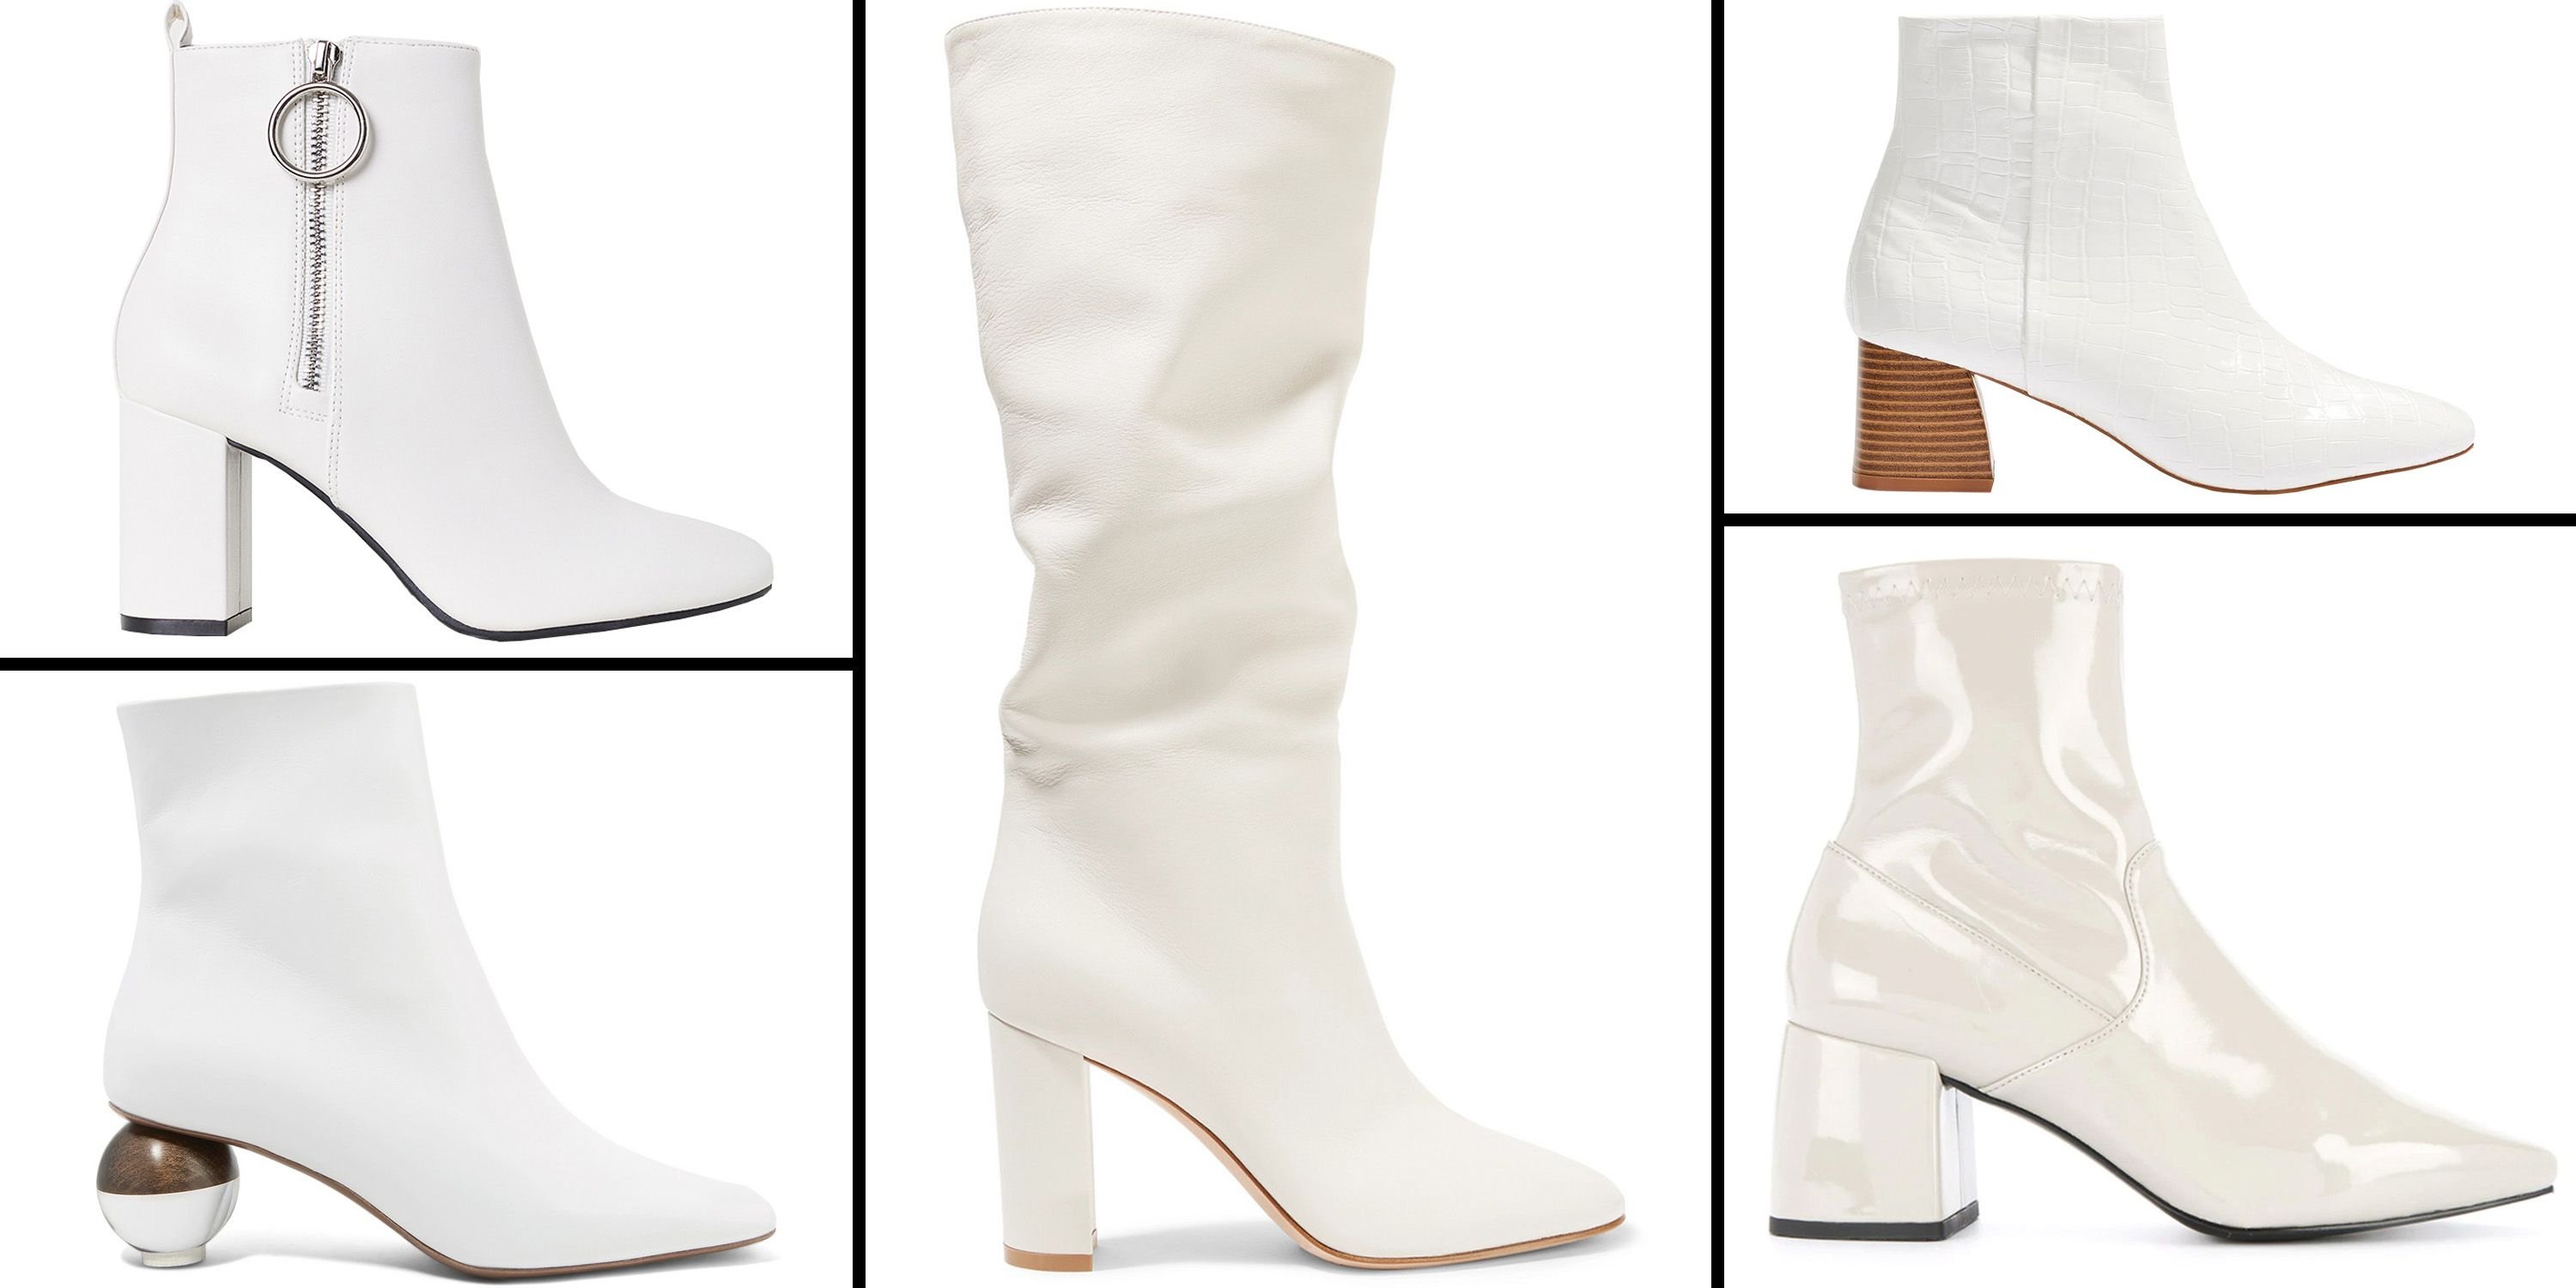 df6092f9bdf9e The 16 Best White Boots to Shop For Fall 2018 - White Boots for Women